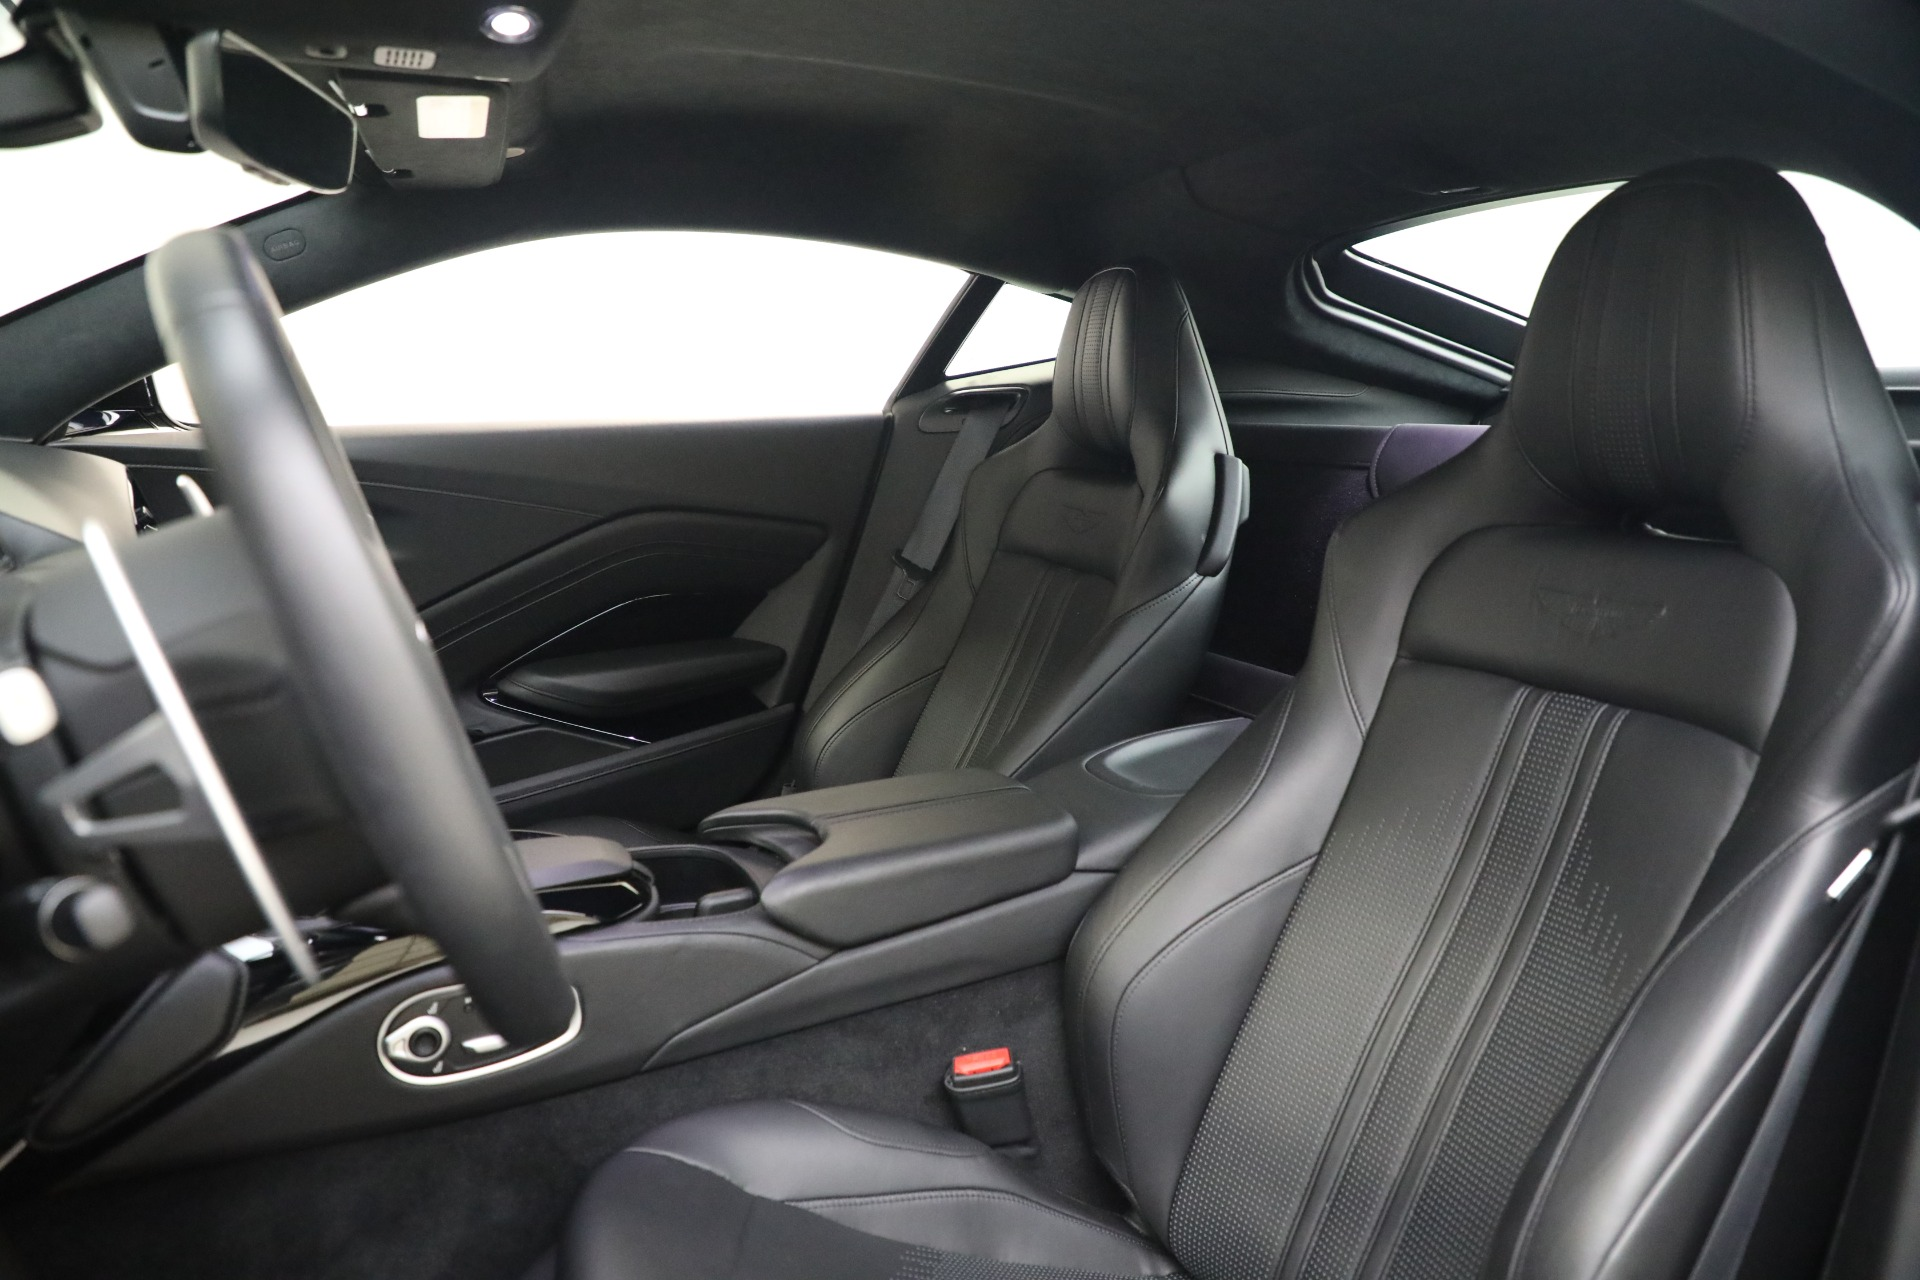 New 2019 Aston Martin Vantage V8 For Sale In Westport, CT 3307_p14